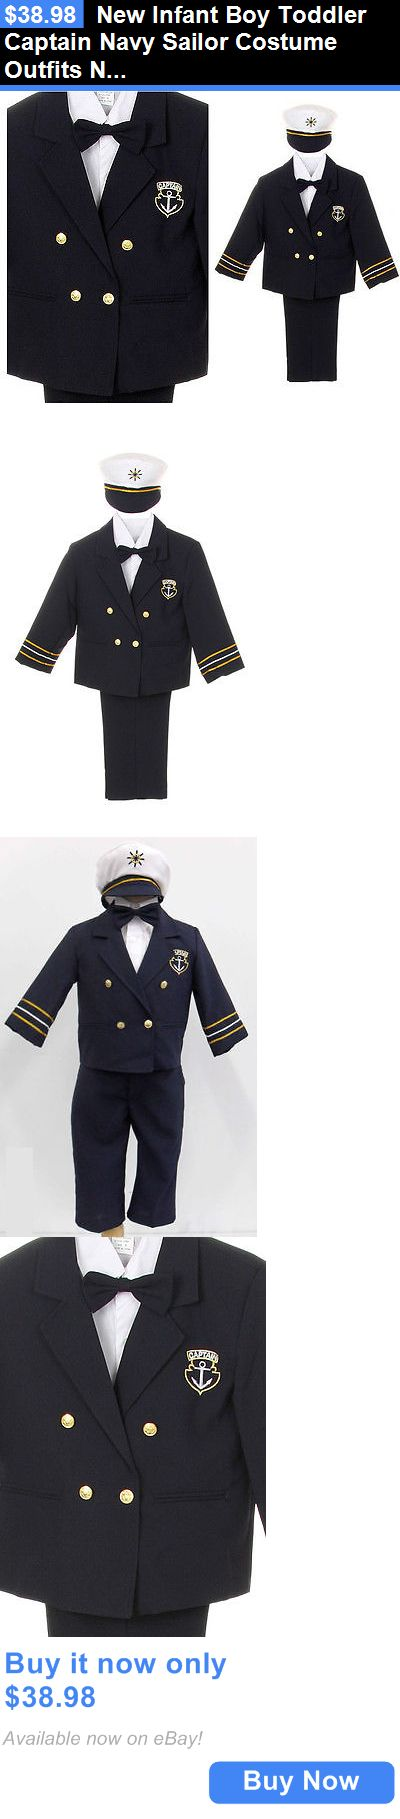 Halloween Costumes Kids: New Infant Boy Toddler Captain Navy Sailor Costume Outfits Nb Baby To 7 Years BUY IT NOW ONLY: $38.98